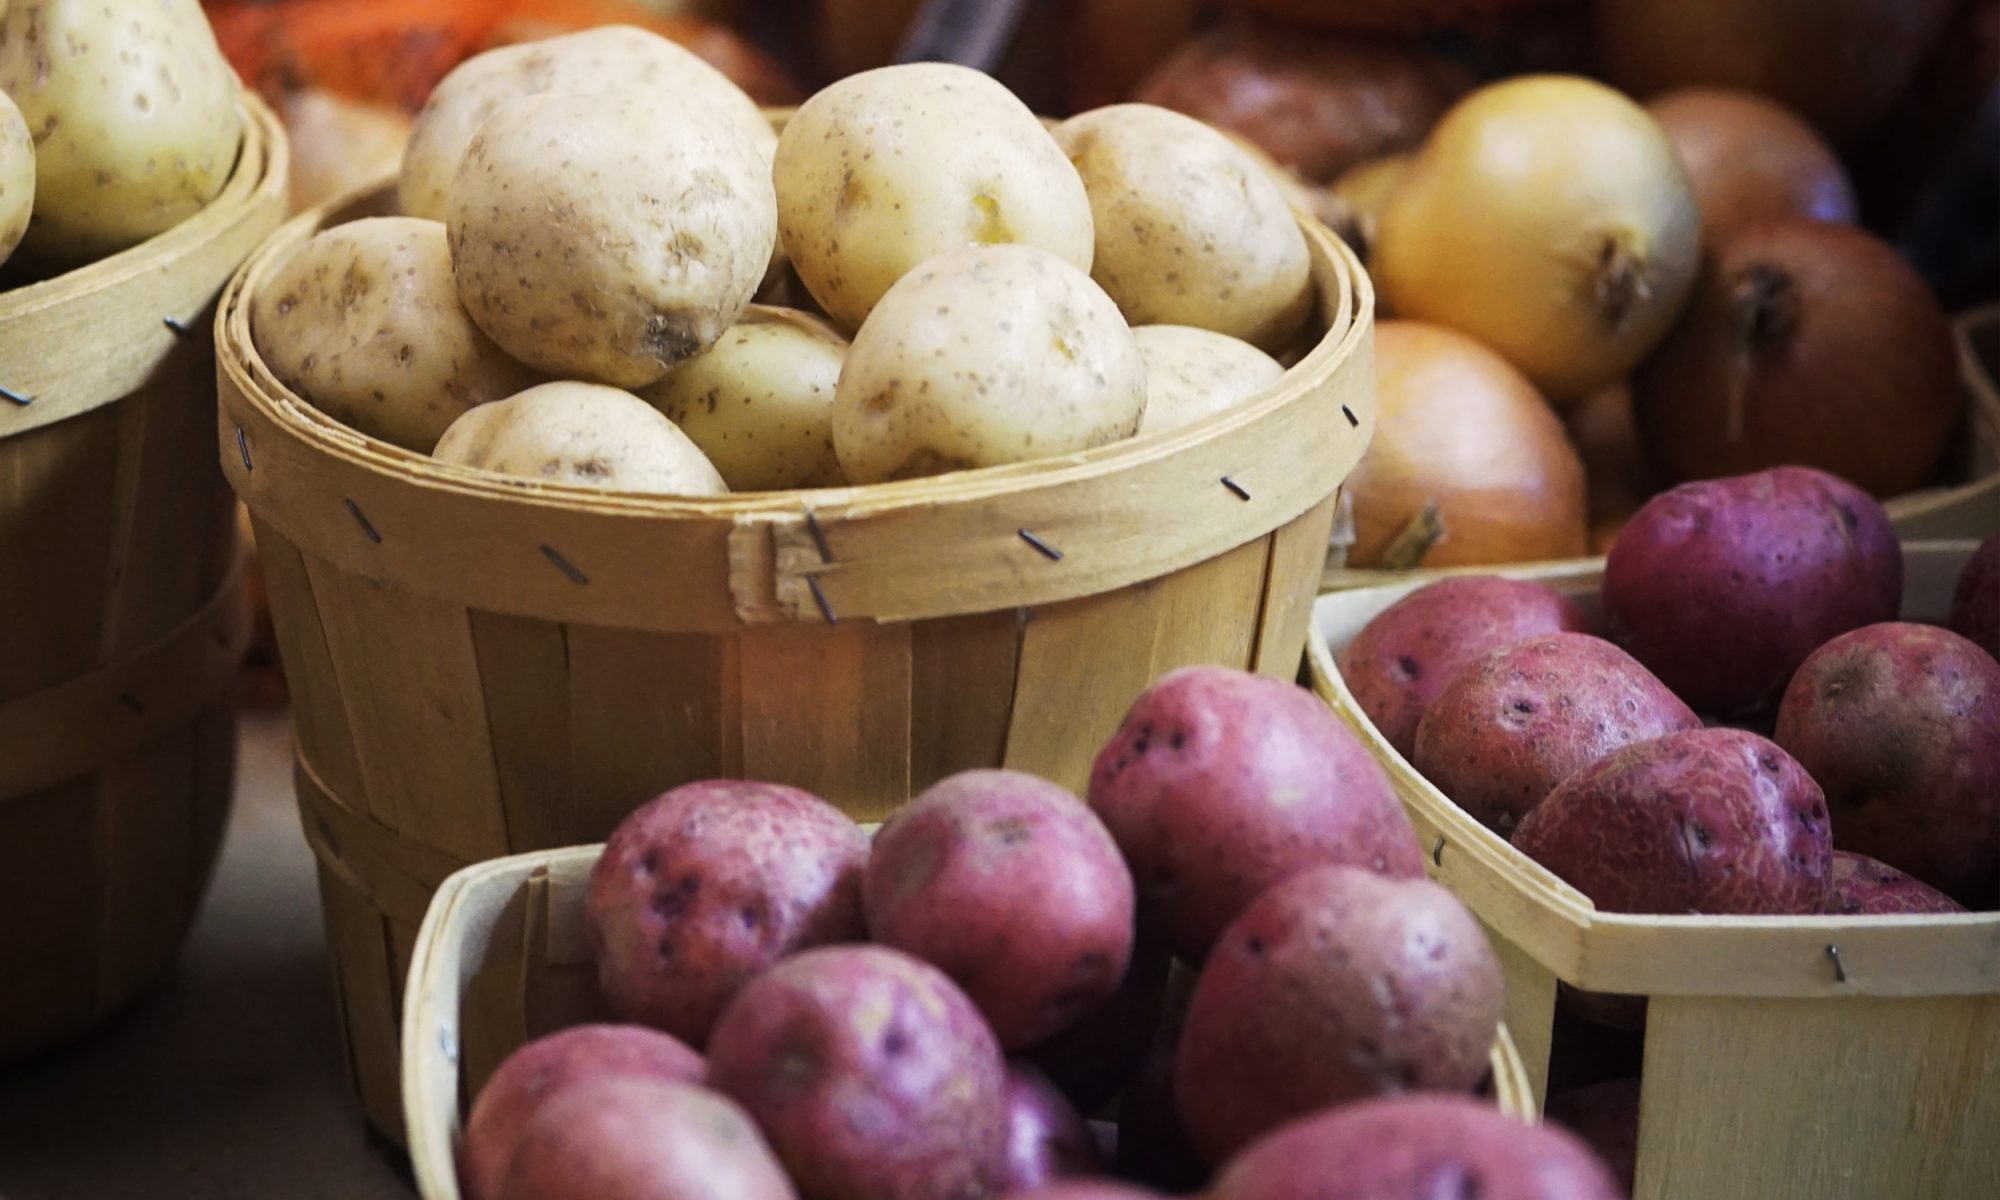 EC: What's the Difference Between Russet, Red, and Yukon Gold Potatoes?